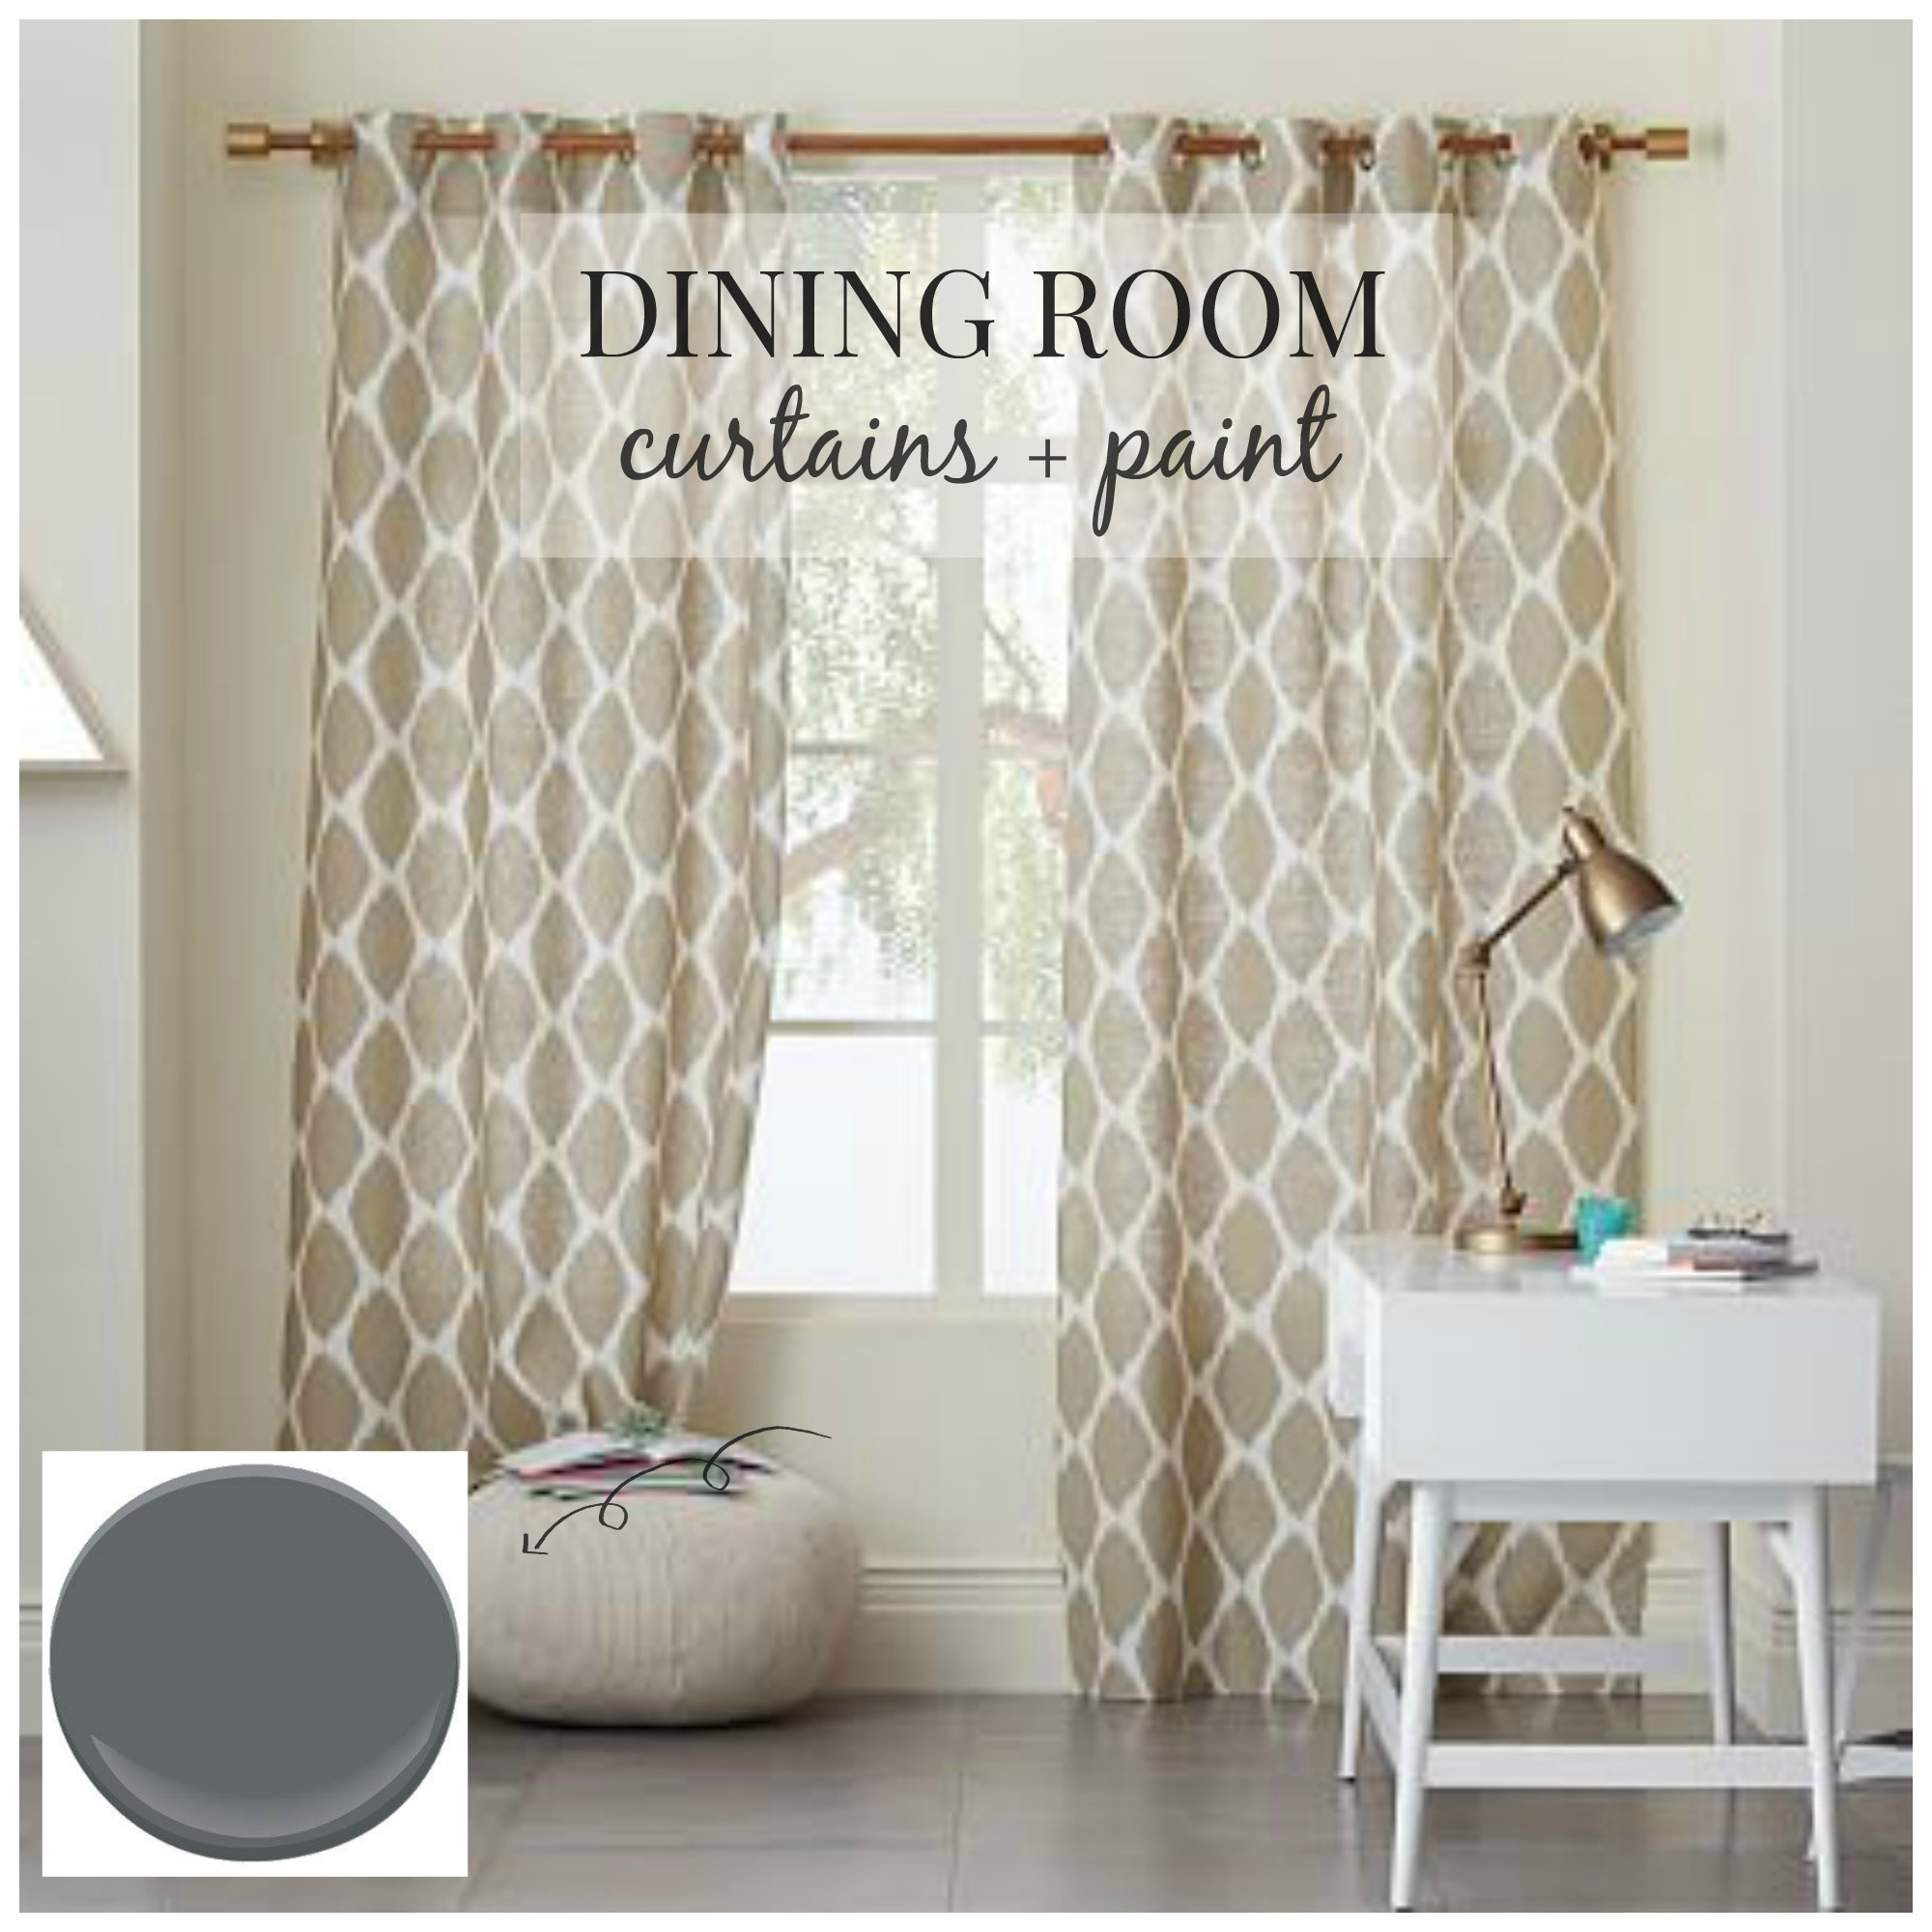 Dining Room Design-Curtains + Paint - City Farmhouse